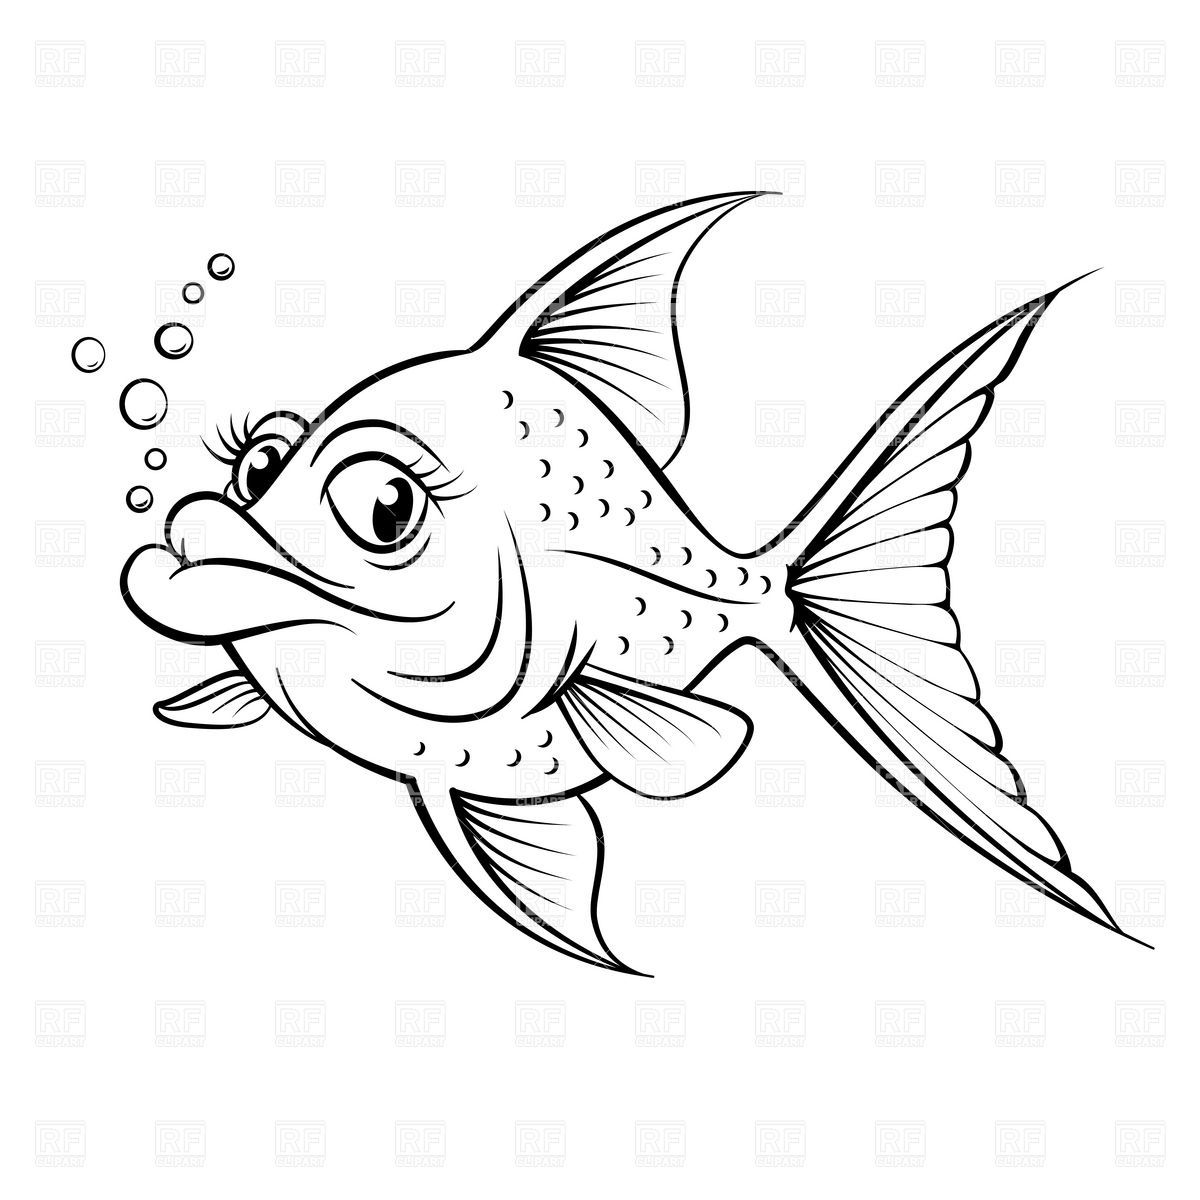 - Simple Fish Drawing Outline Images & Pictures - Becuo Cartoon